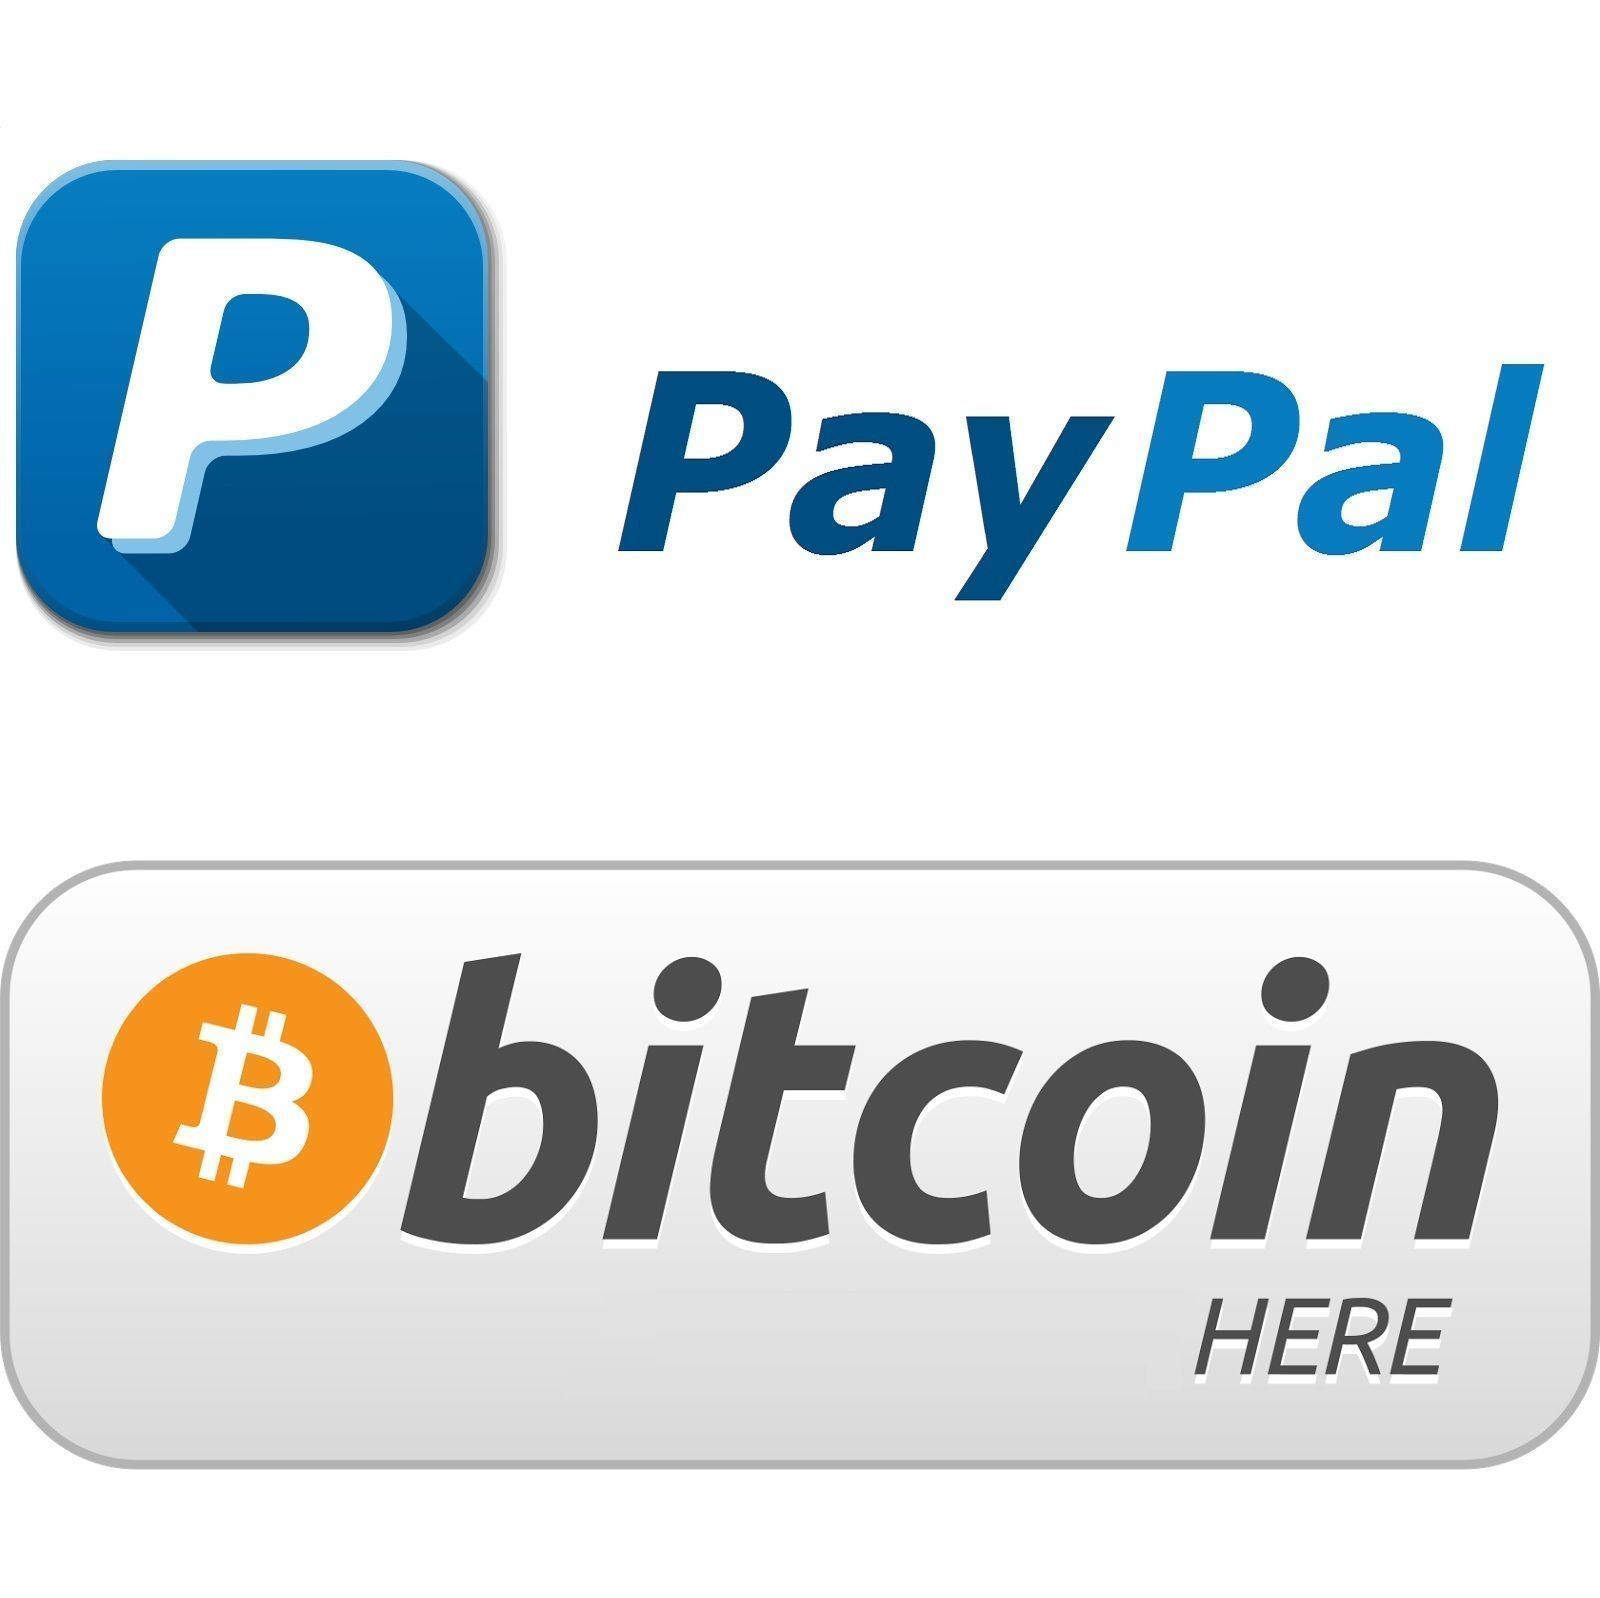 0 1 Bitcoin 0 1 BTC Direct to your Wallet! Fast Transfer if